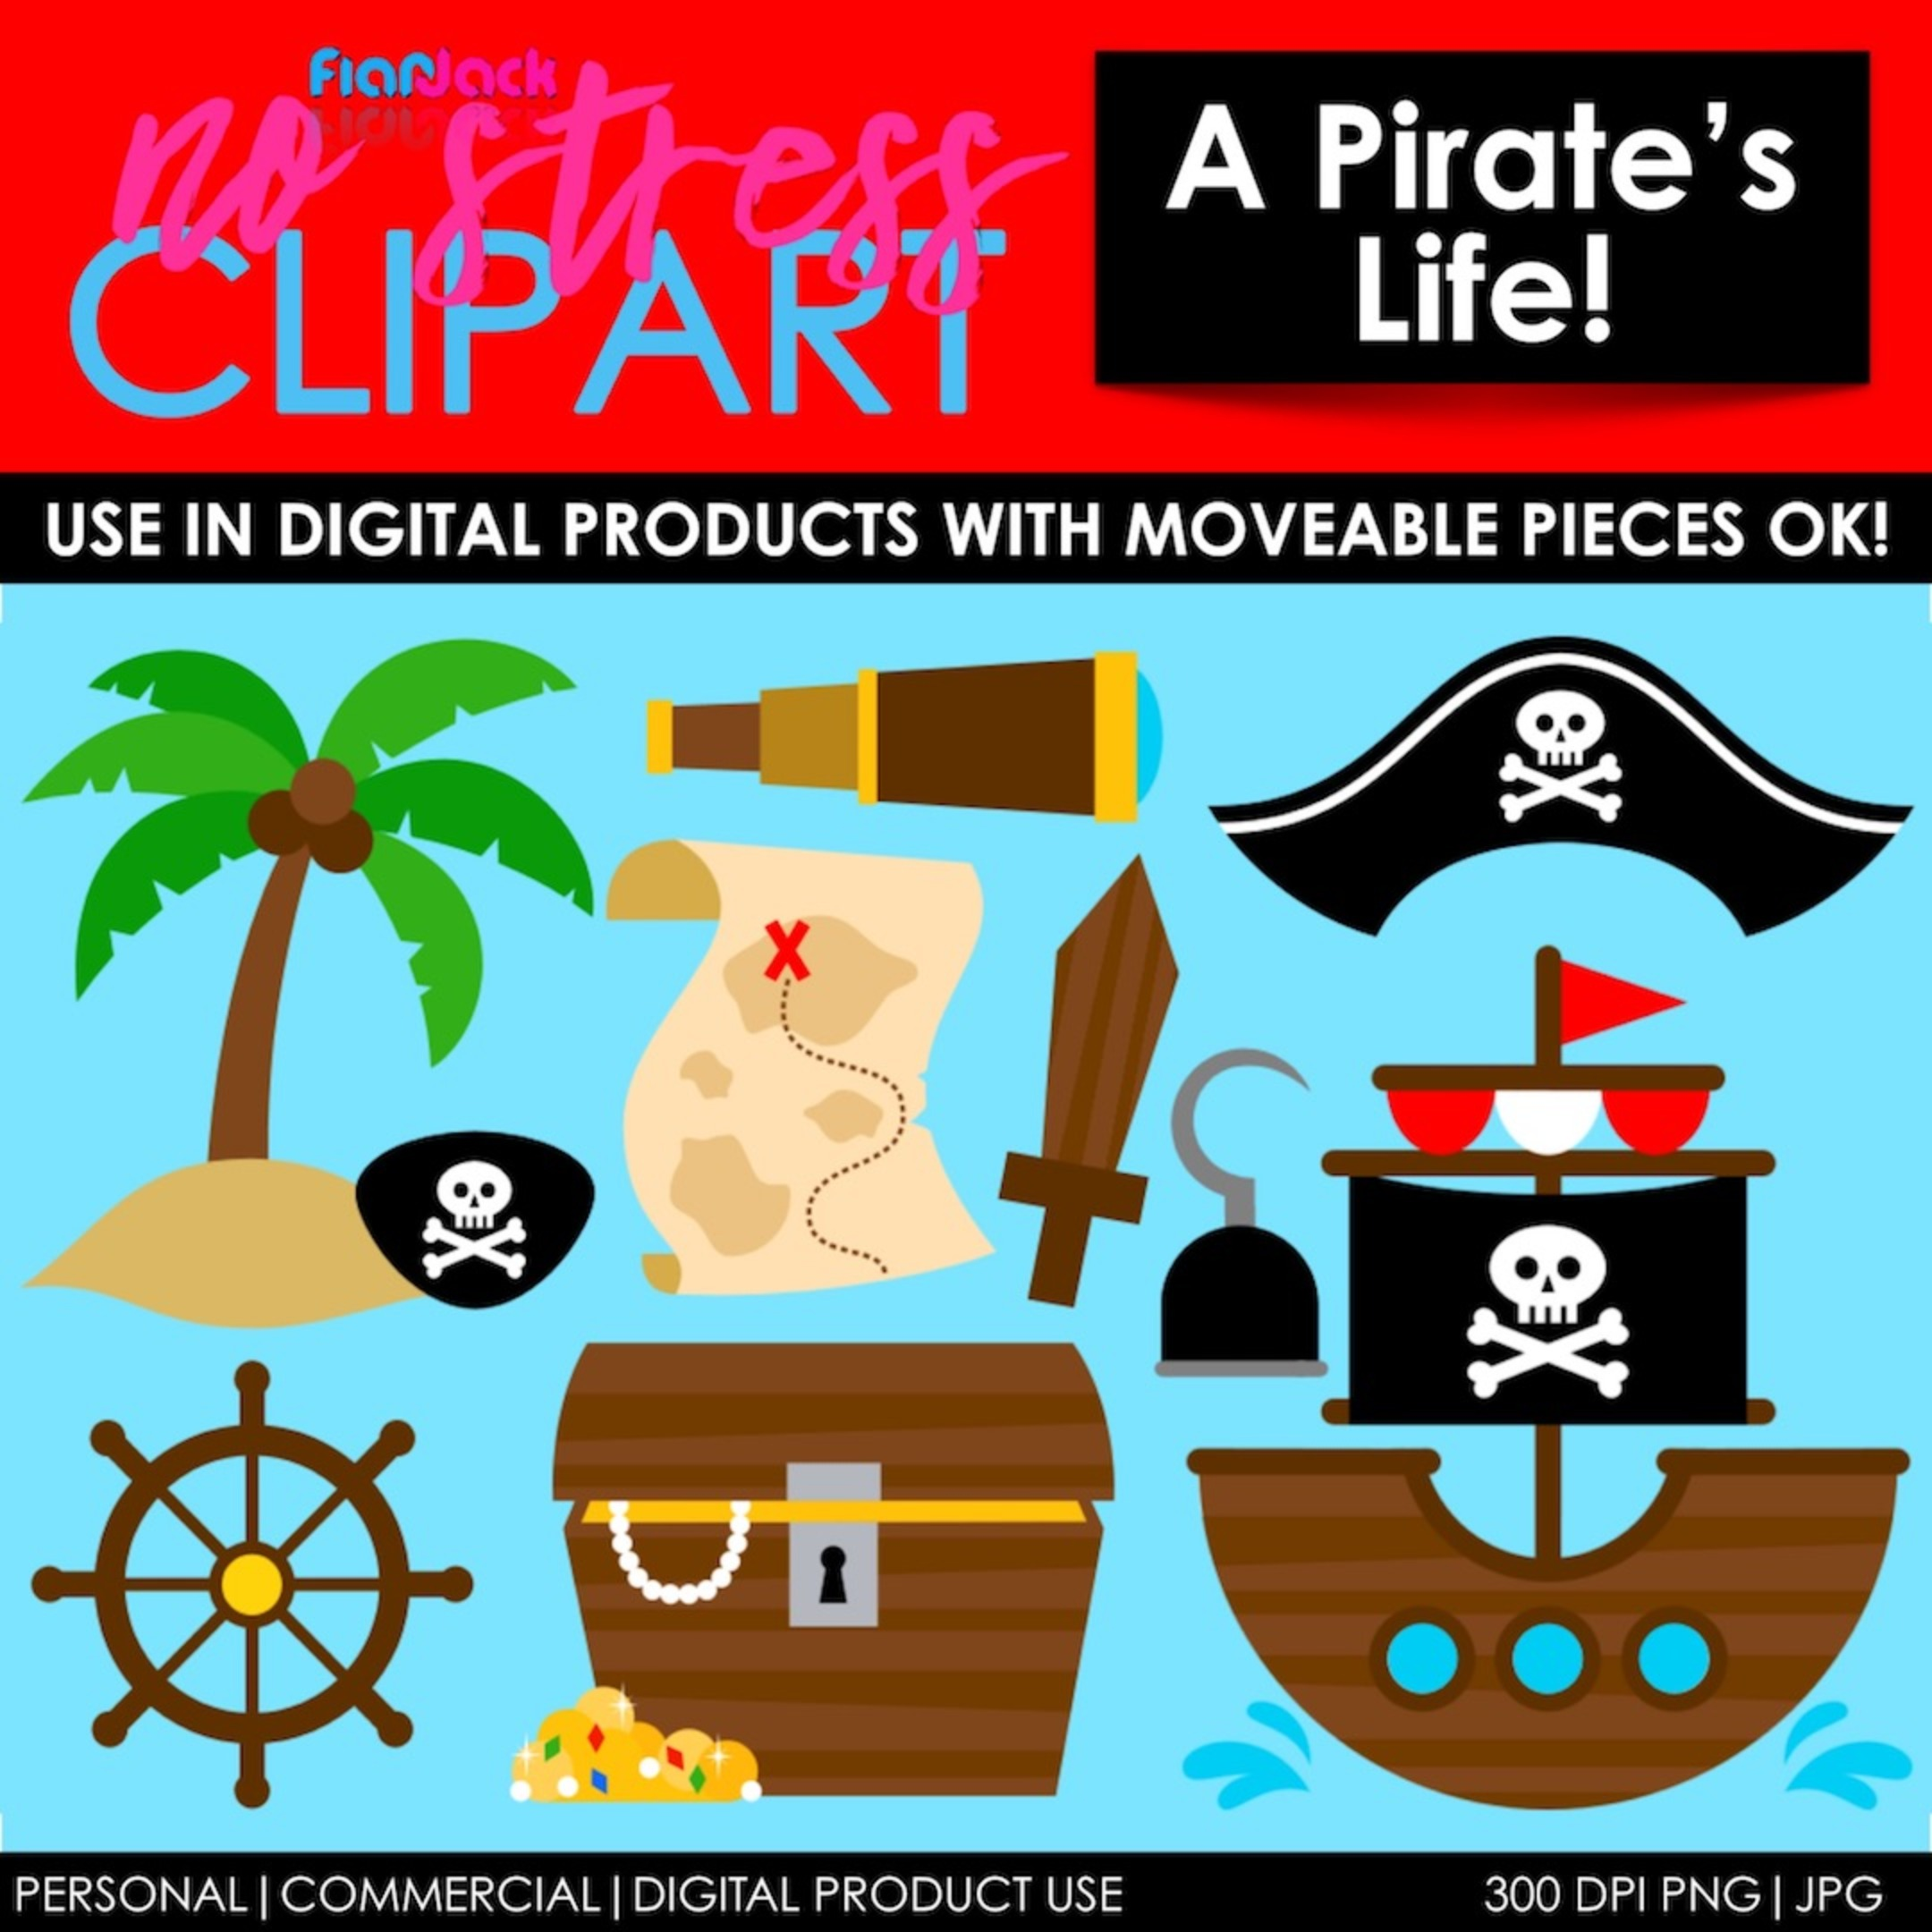 A Pirate's Life!